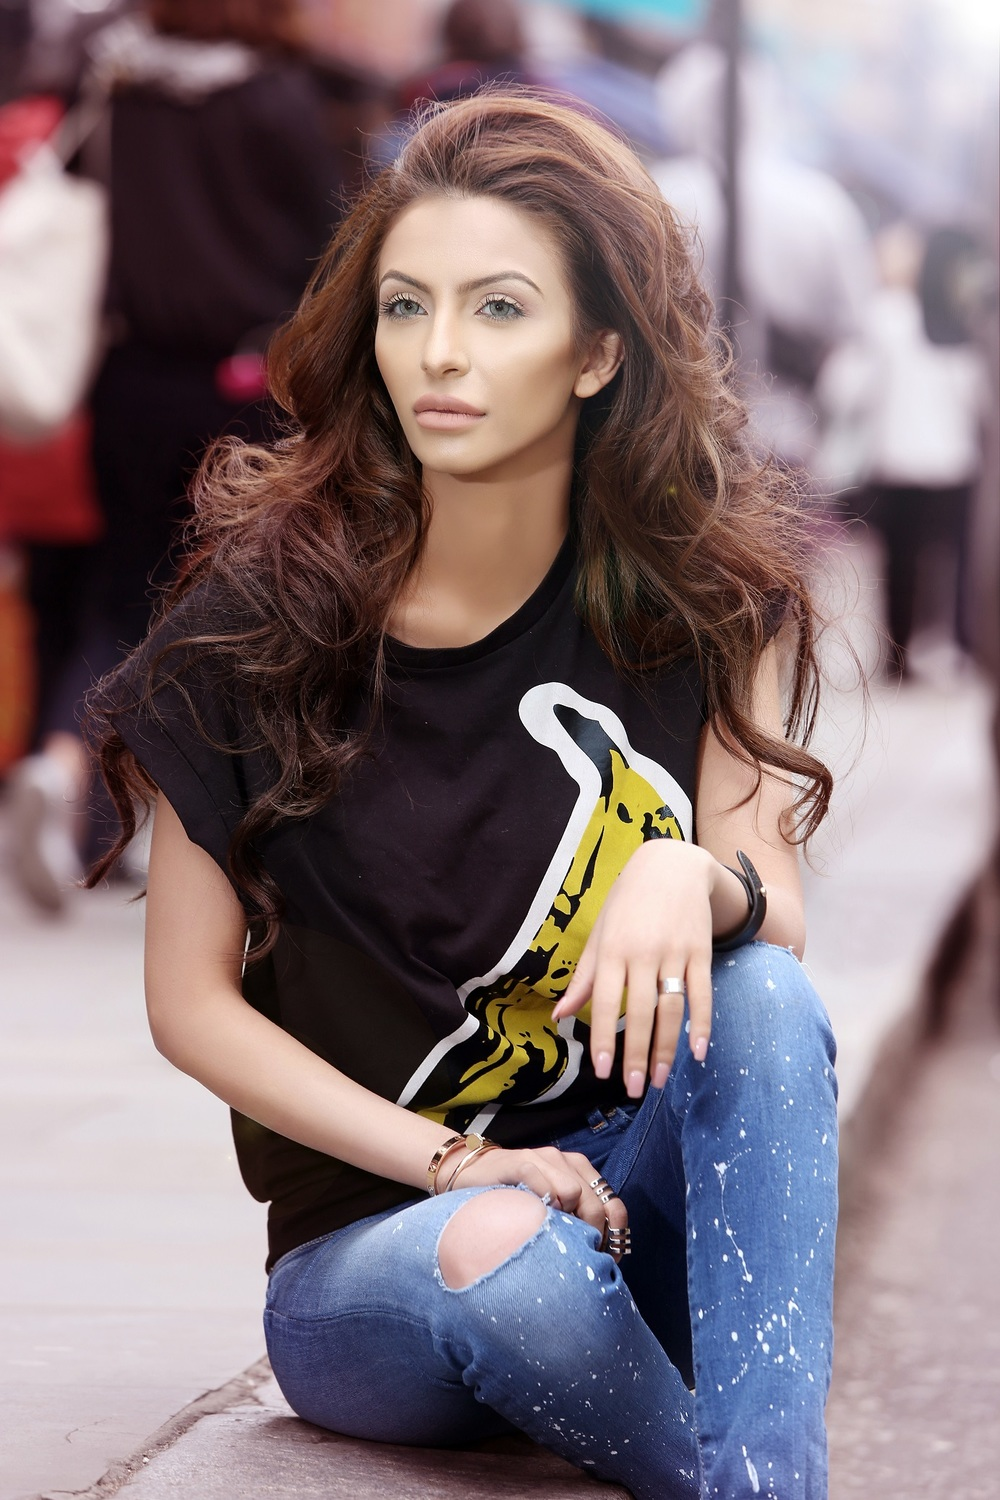 Pepe Jeans Pakistan - Break Your Jeans campaign starring Faryal Makhdoom - Look 2 (1).JPG